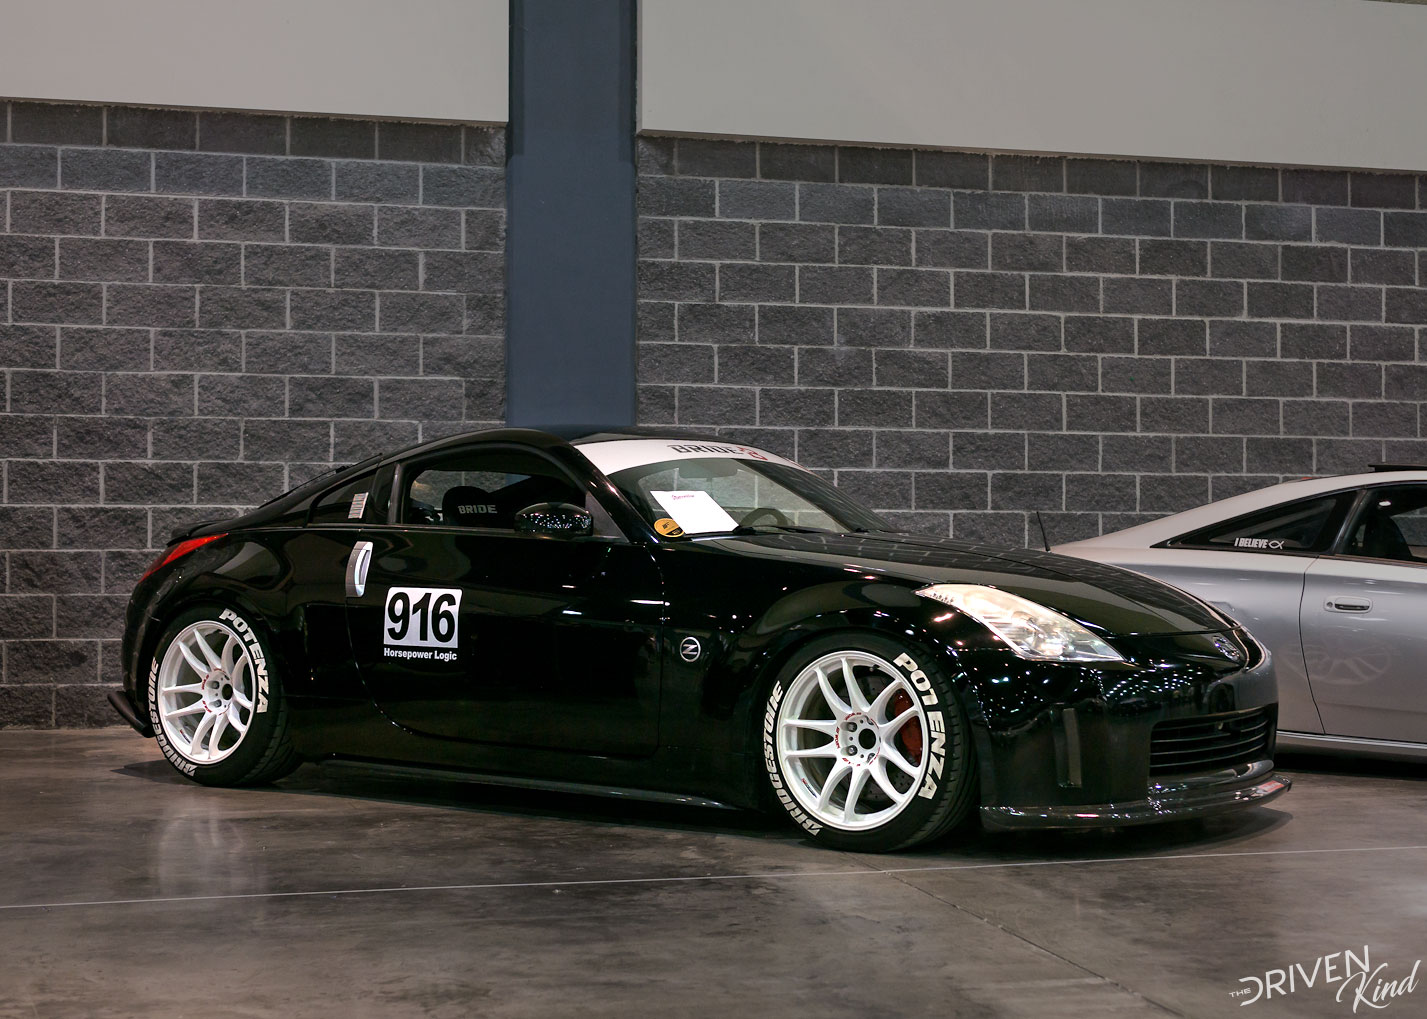 Nissan 350Z STANCENATION FLORIDA PALM BEACH CONVENTION CENTER 2017 Pt. 2 The Driven Kind Coverage